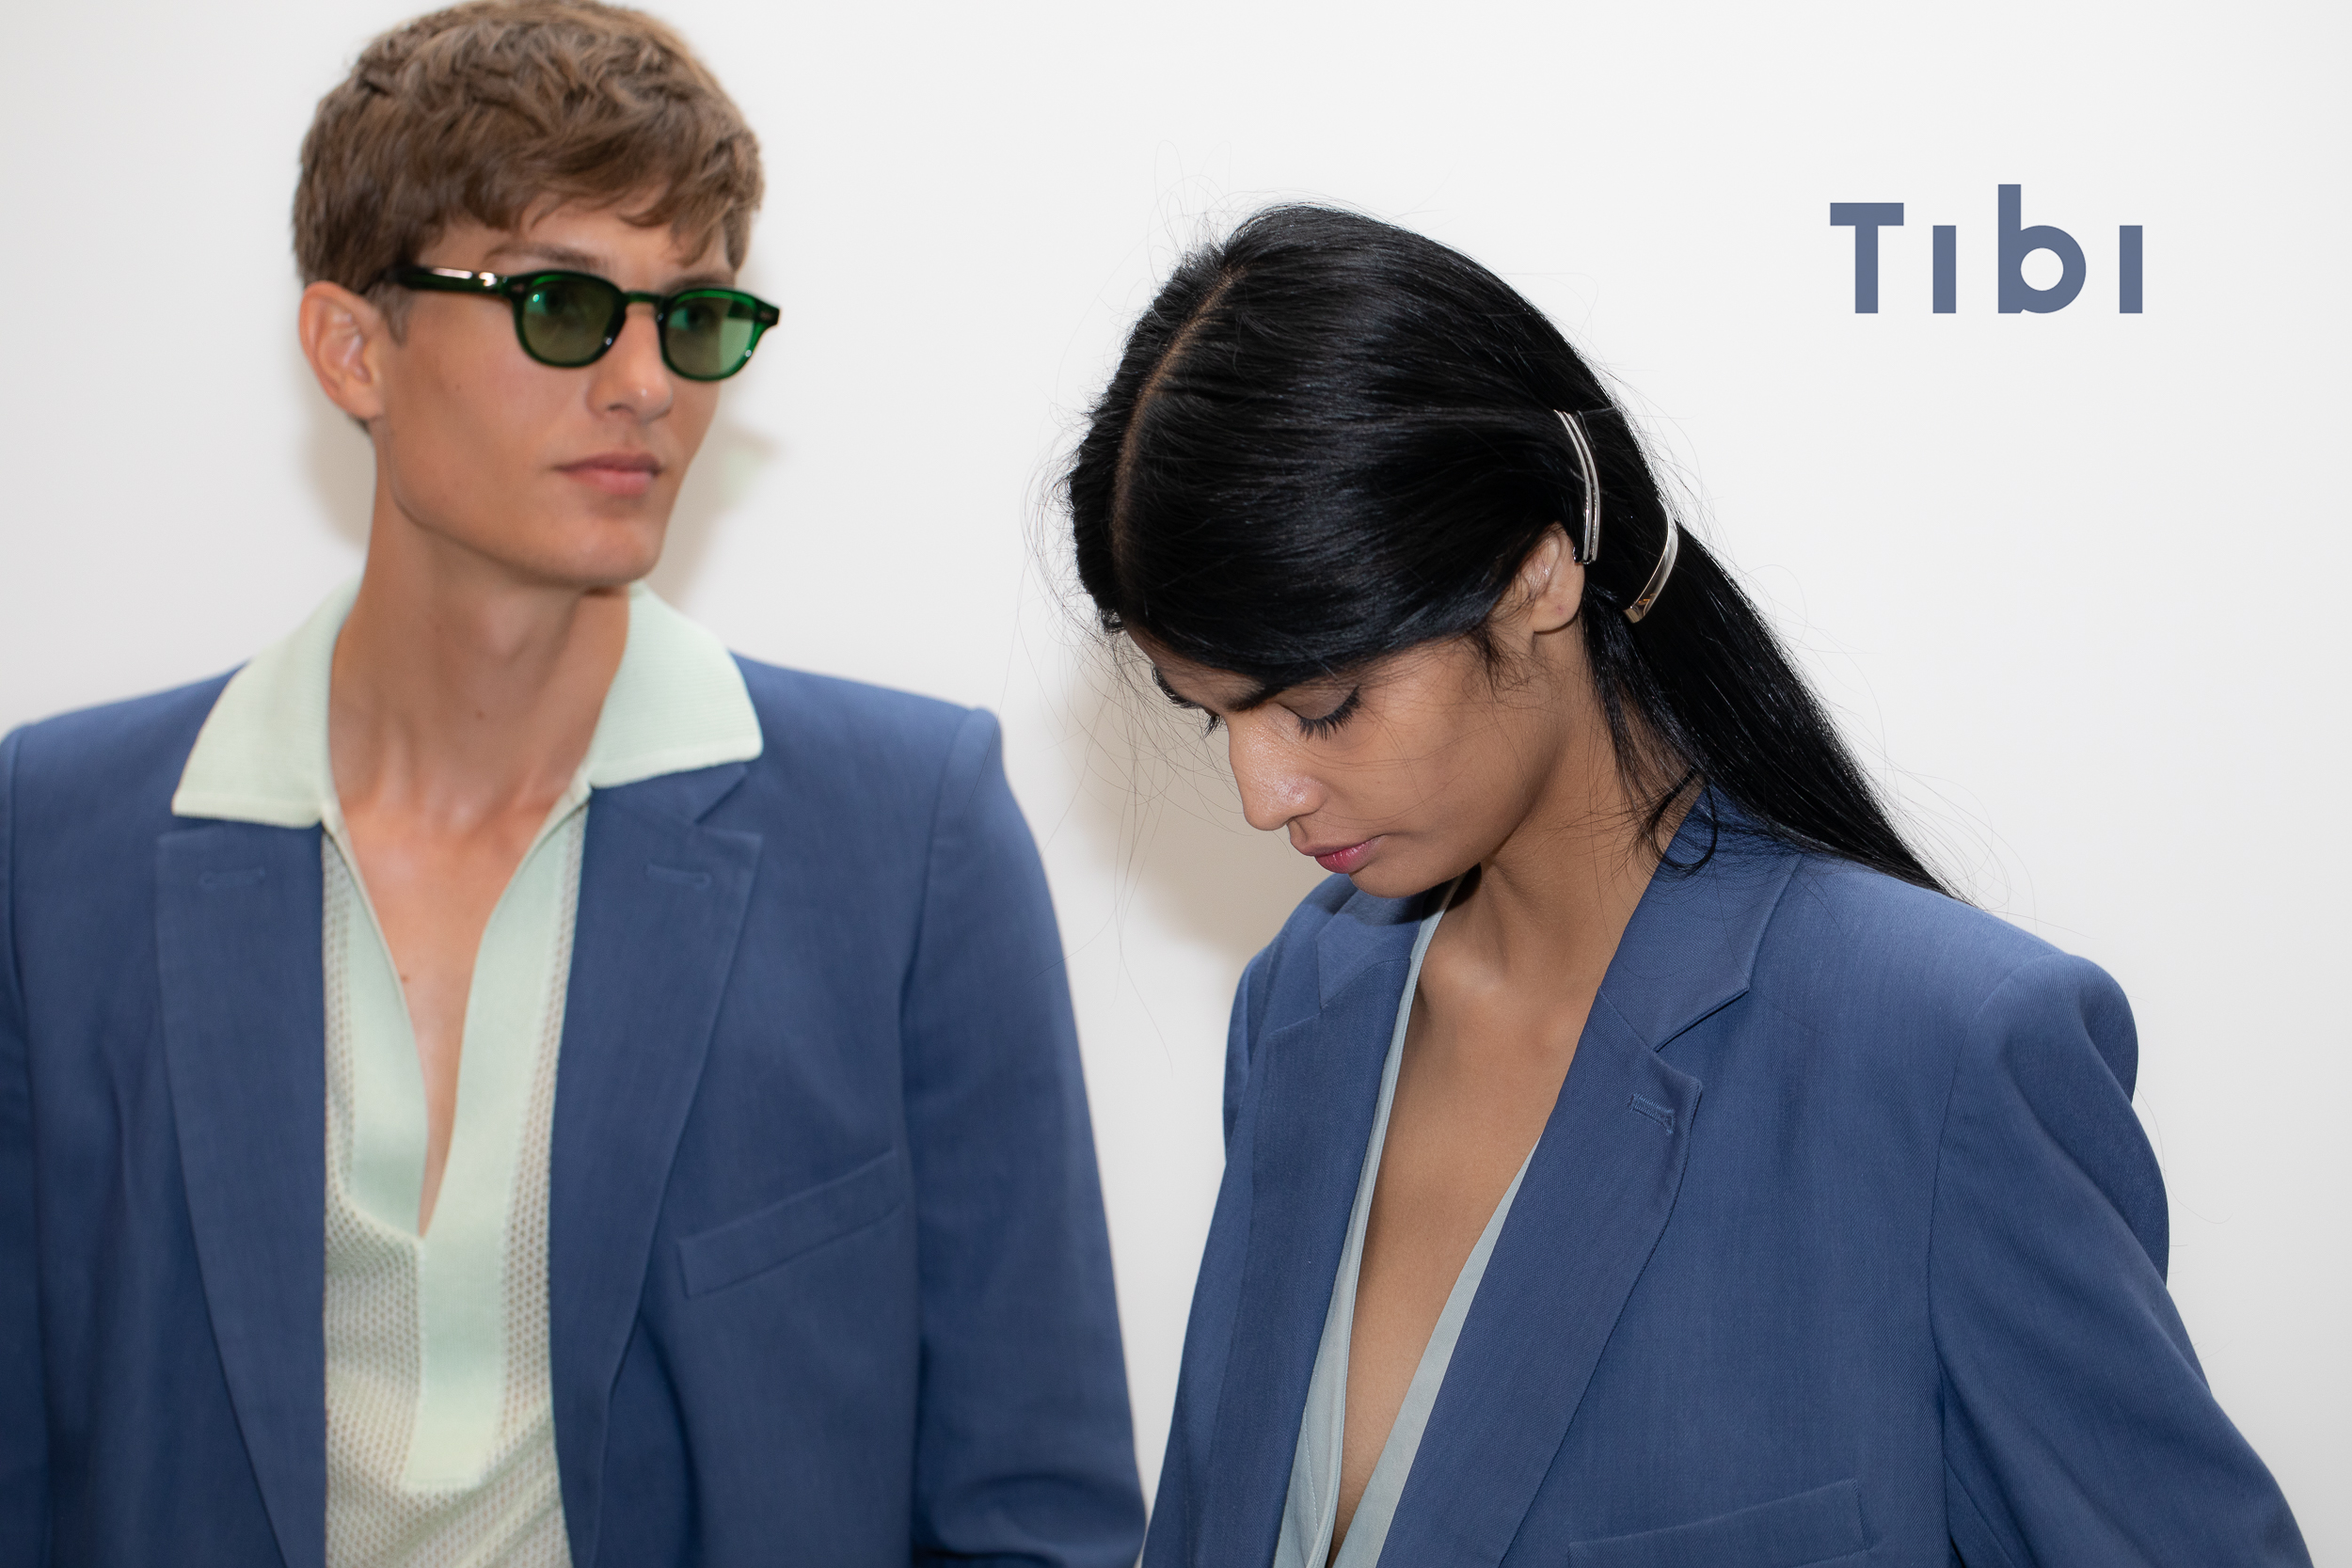 Tibi SS 2019 | Sunglasses, a Collaboration with Moscot